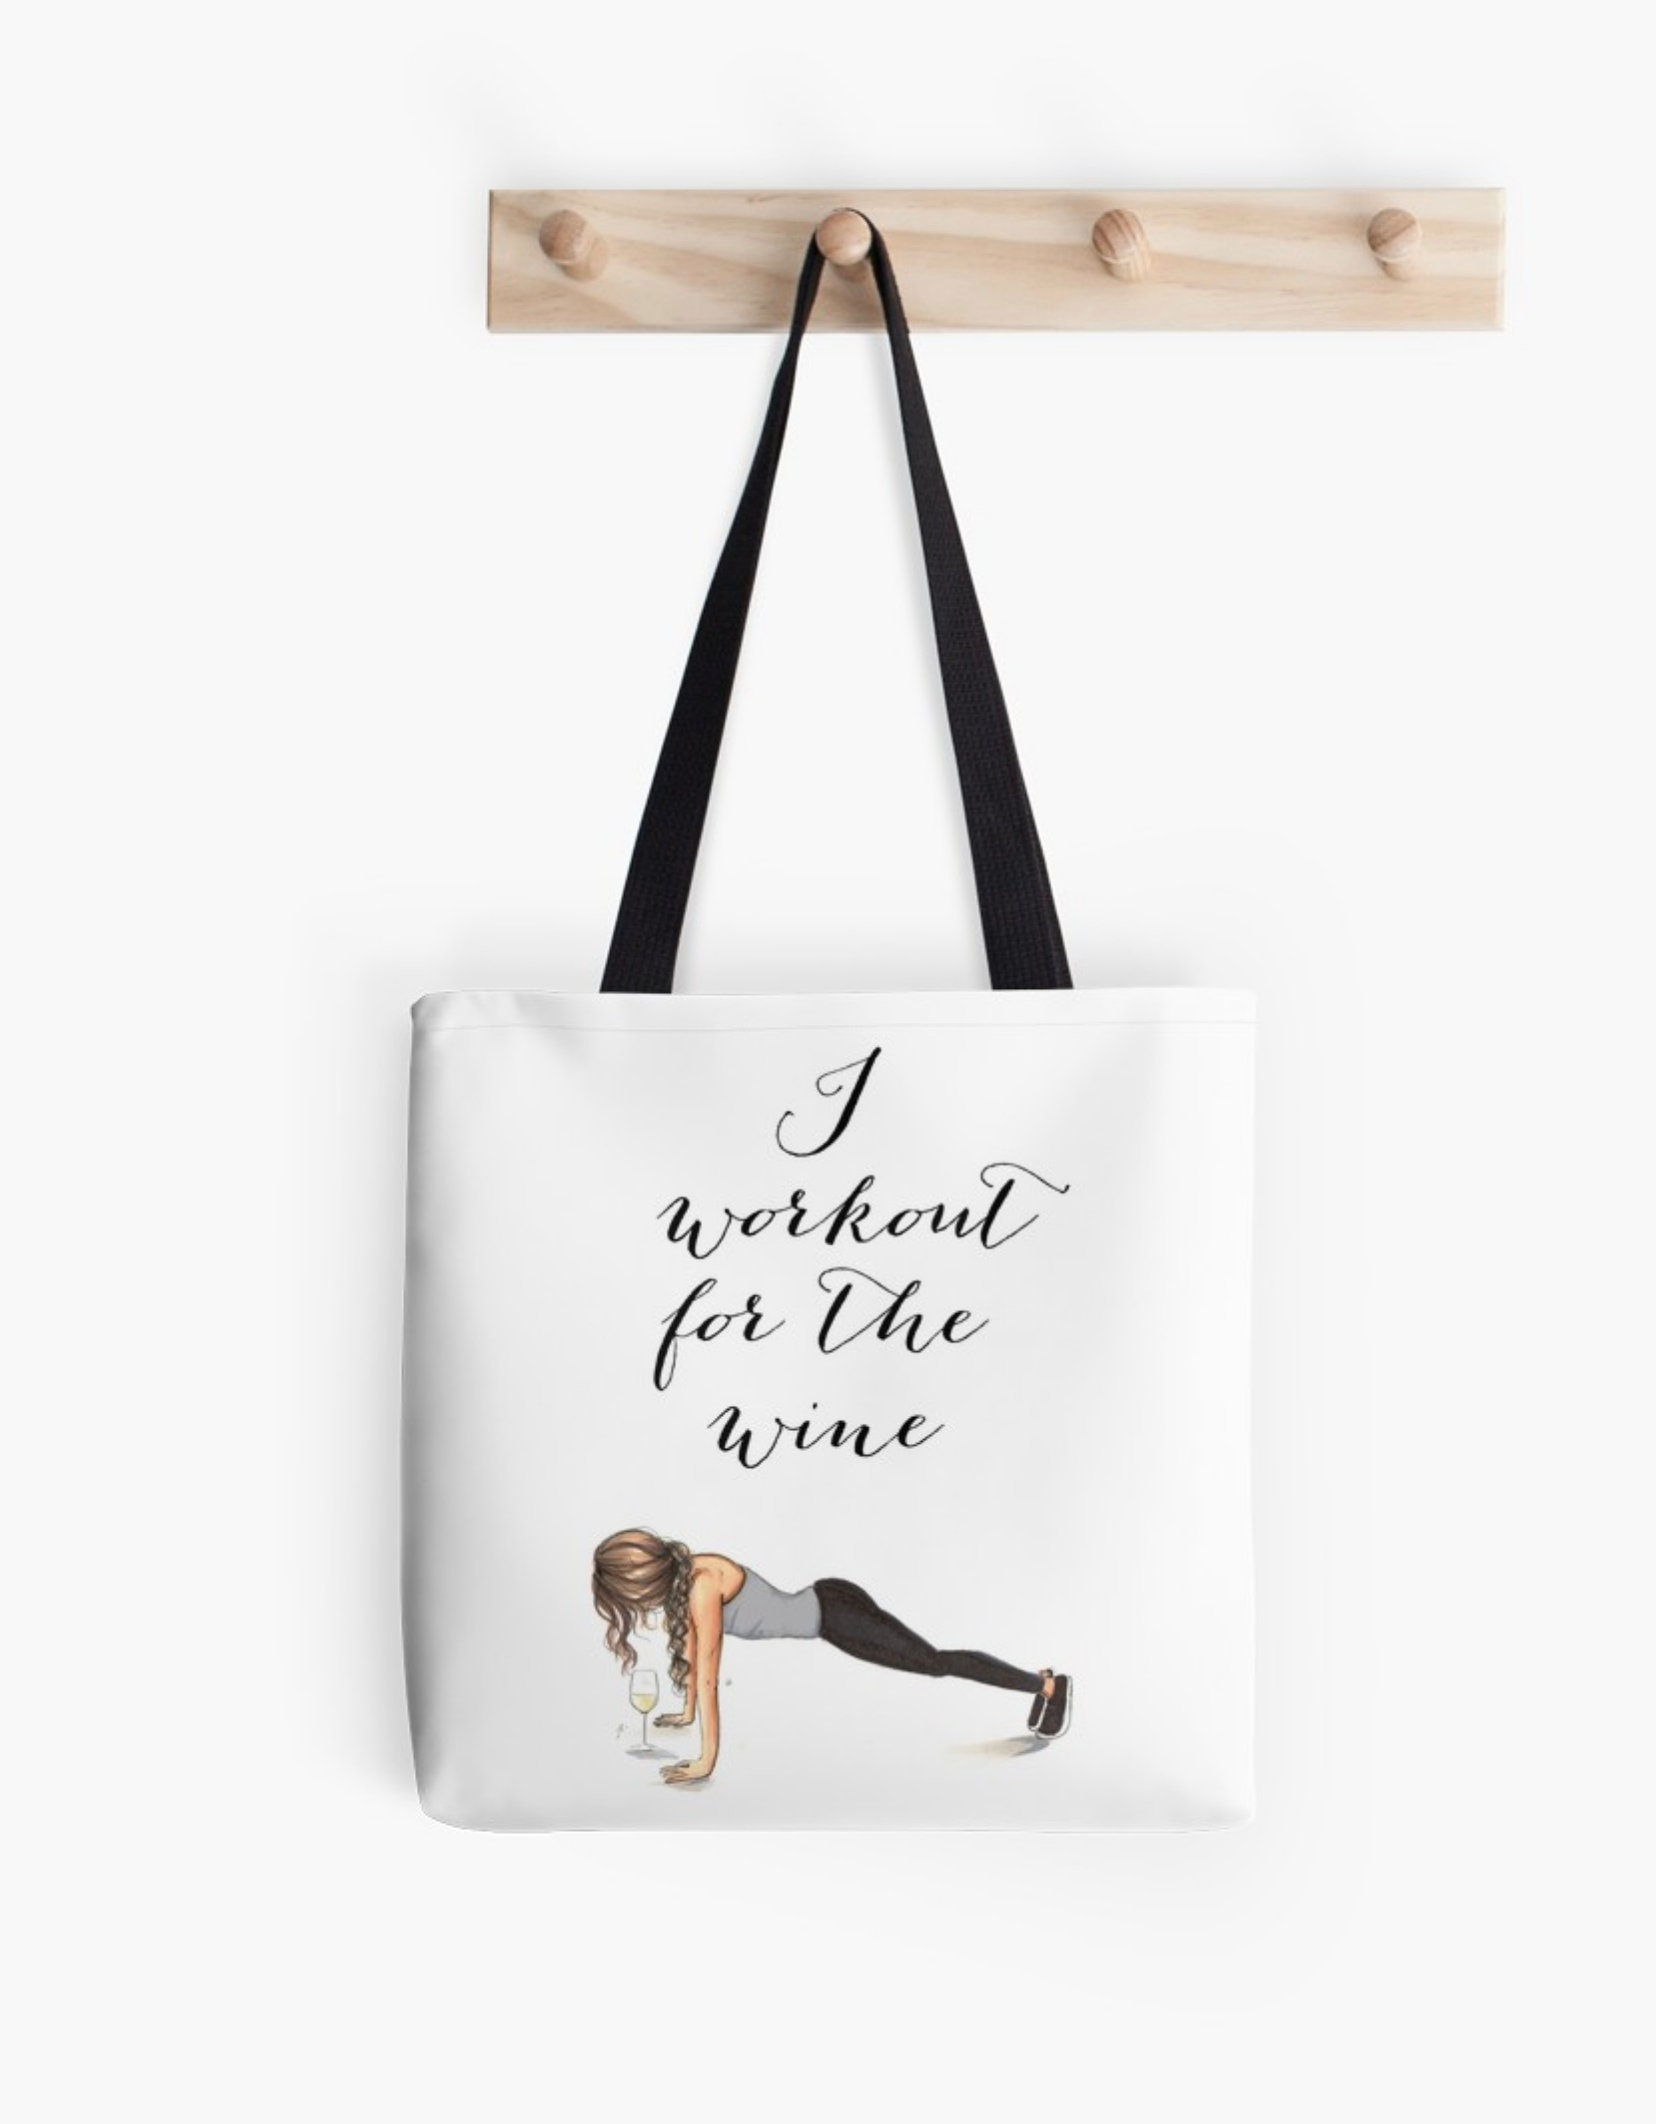 Workout For The Wine Tote Fashion Illustration Art Home Decor Gift